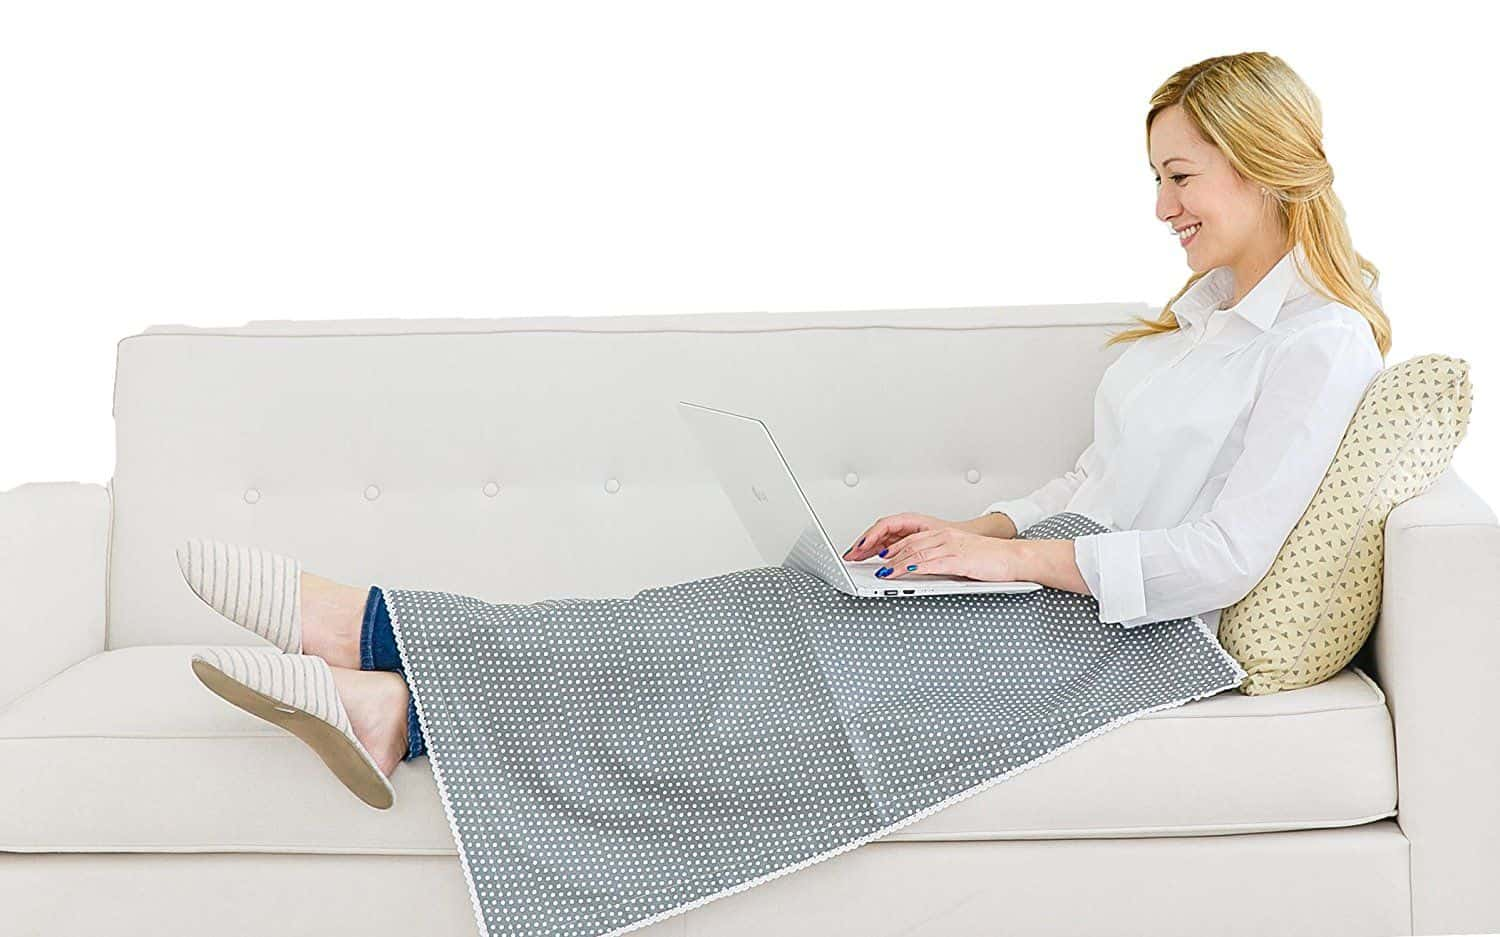 Anti Radiation Blankets - A Buyer's Guide - EMF Academy